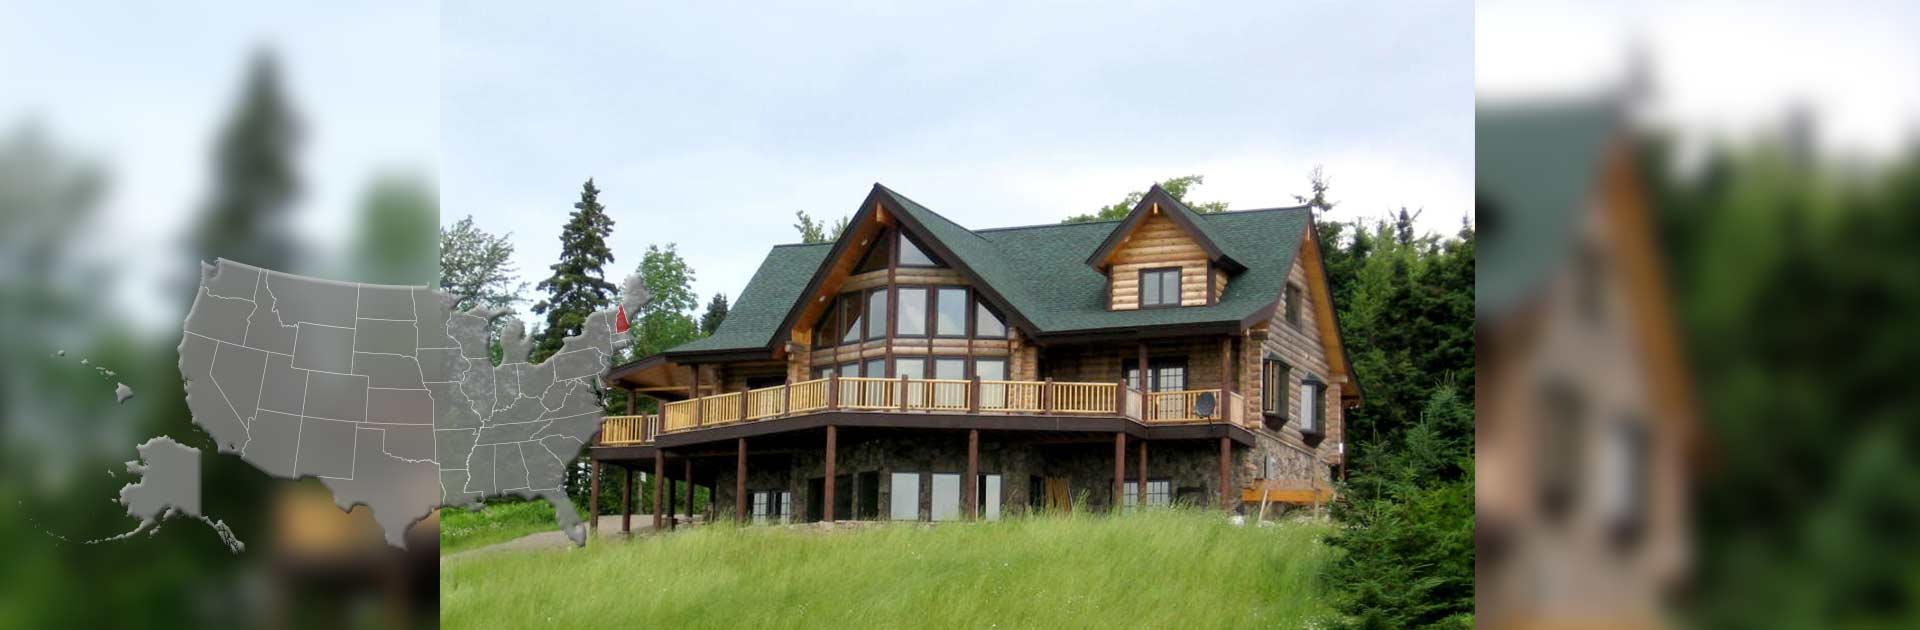 Build in New Hampshire